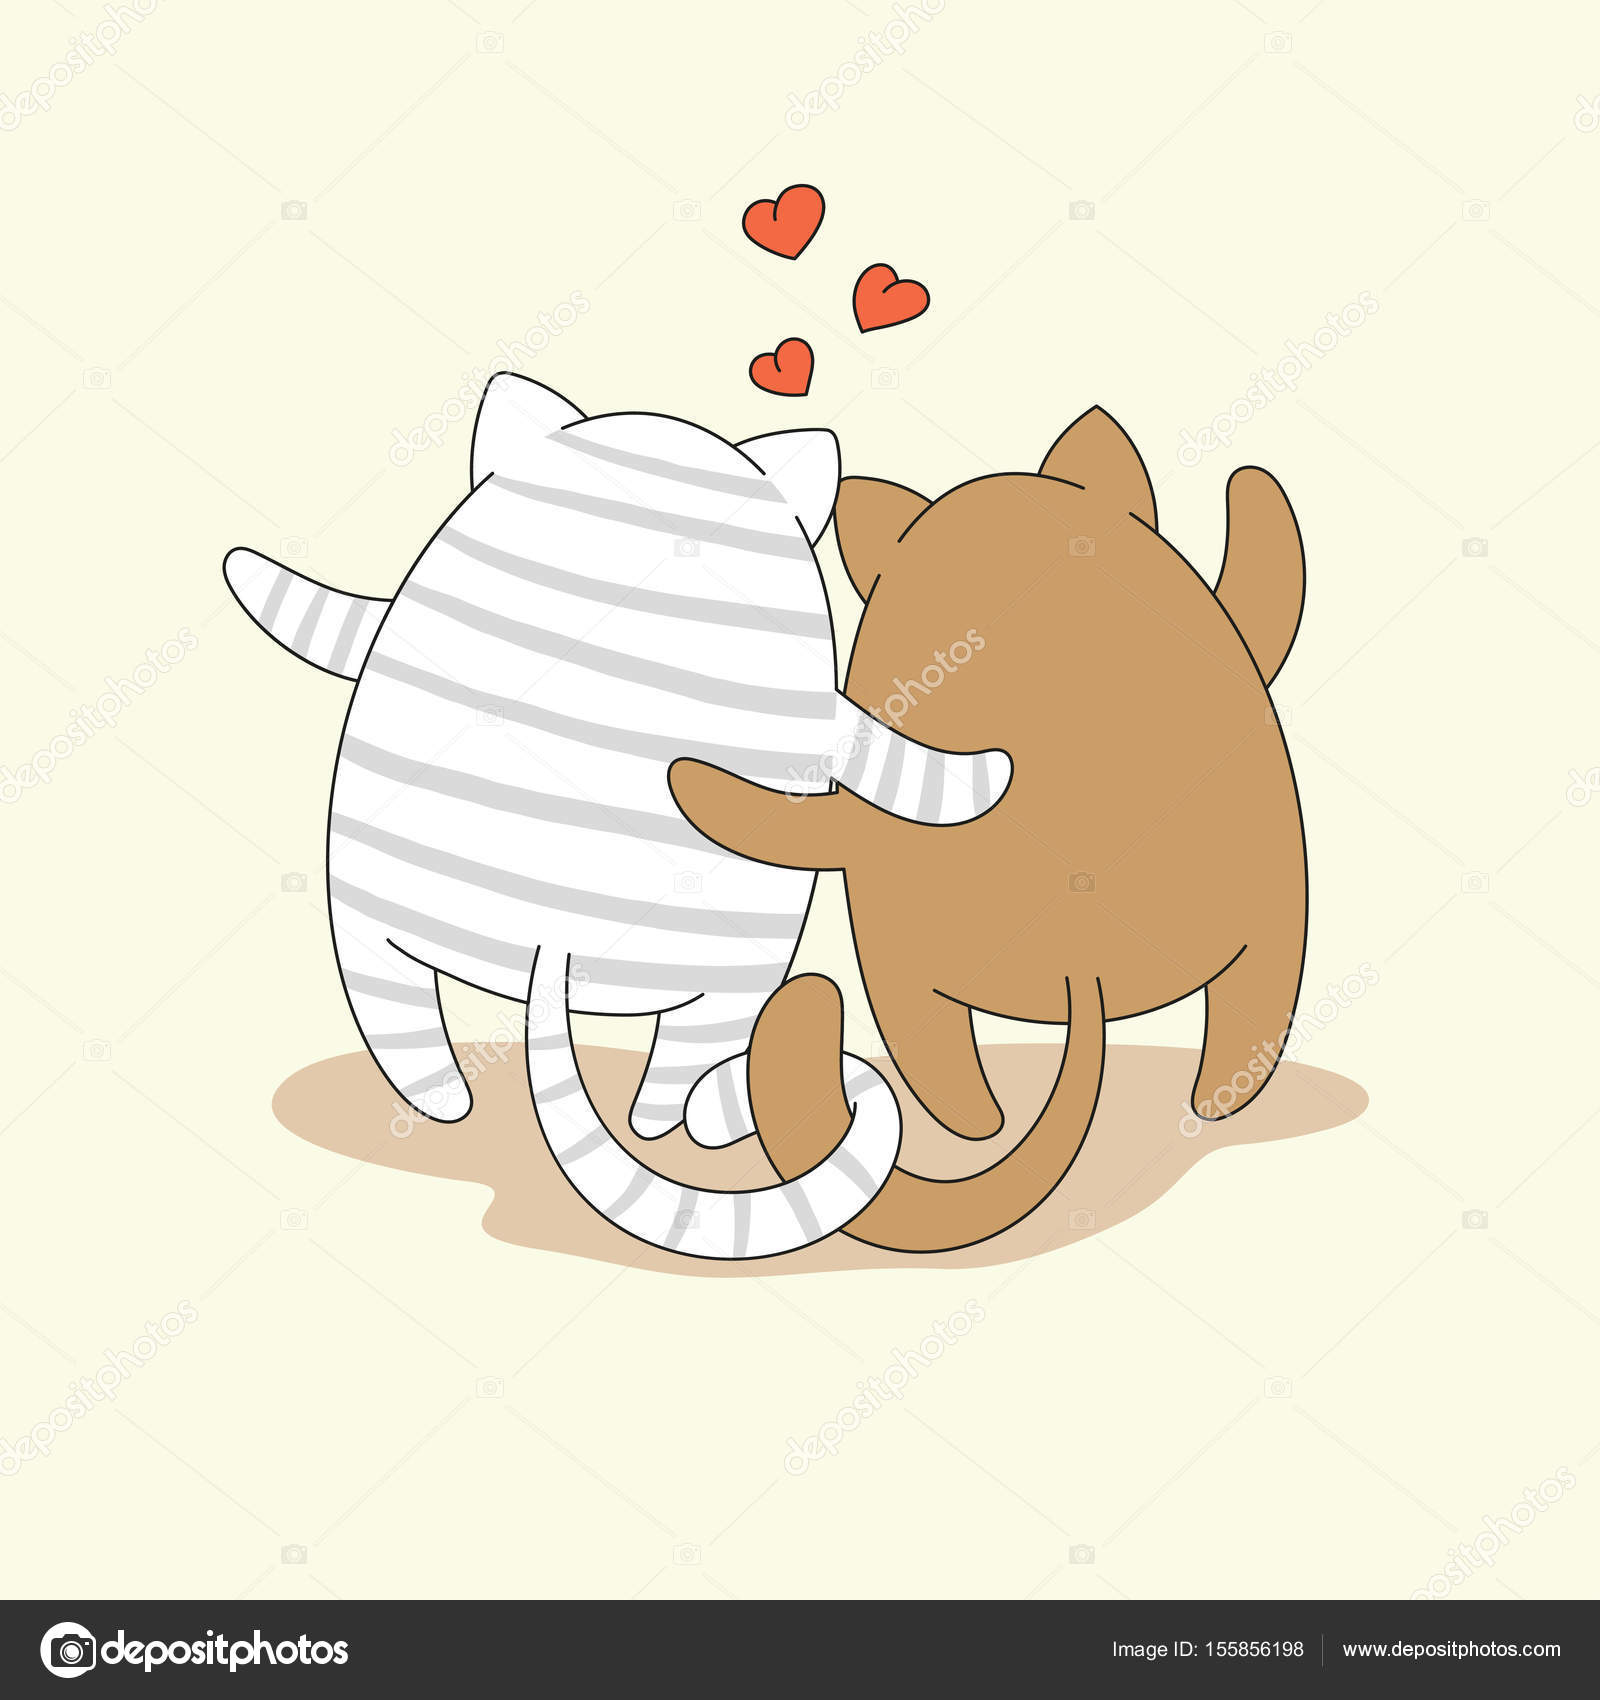 043e016865b Couple of cartoon hugging cats. Vector illustration is suitable for greeting  cards